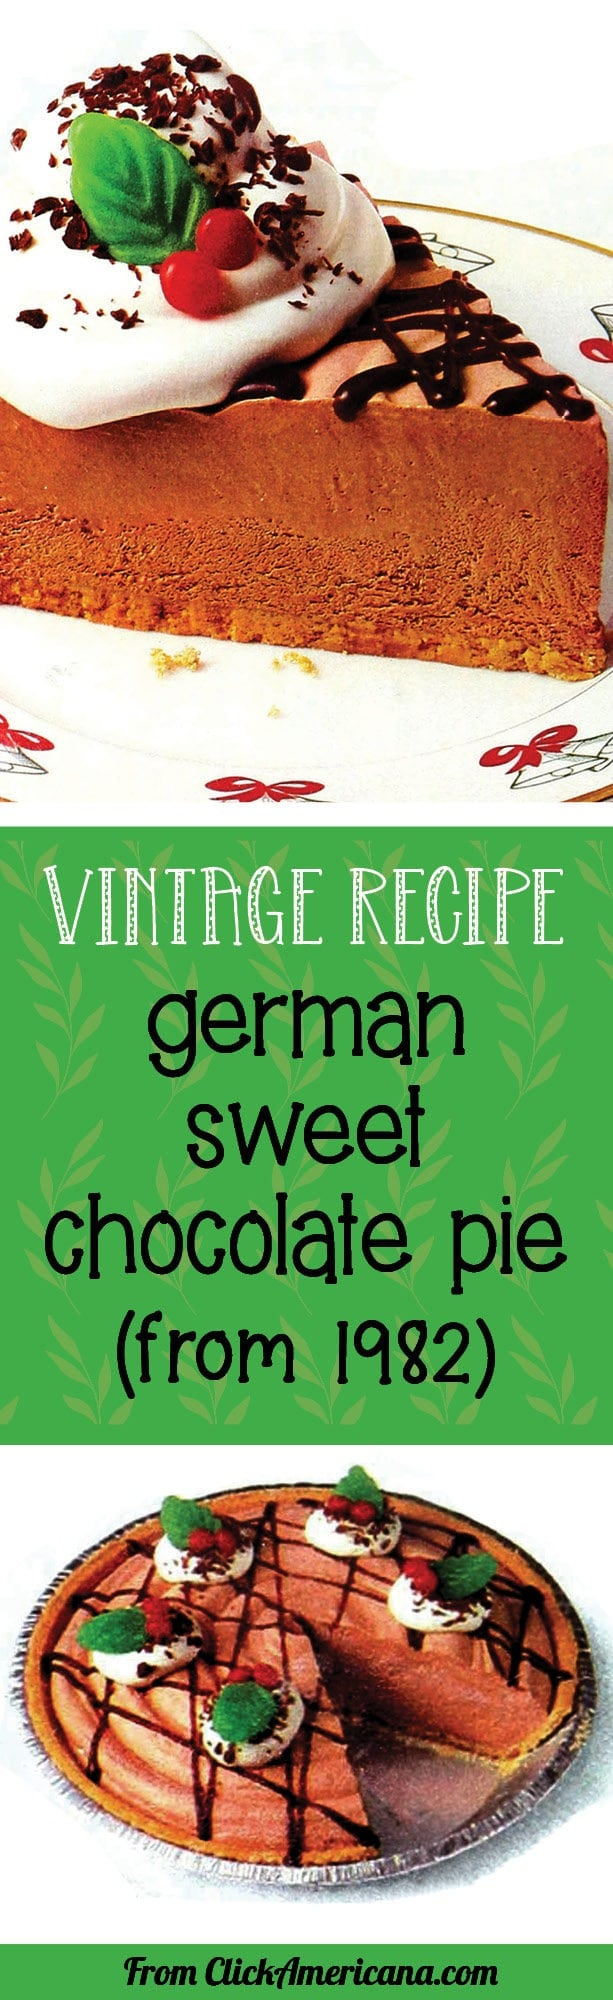 Vintage recipe for German sweet chocolate cheesecake pie (from 1994) - via Click Americana